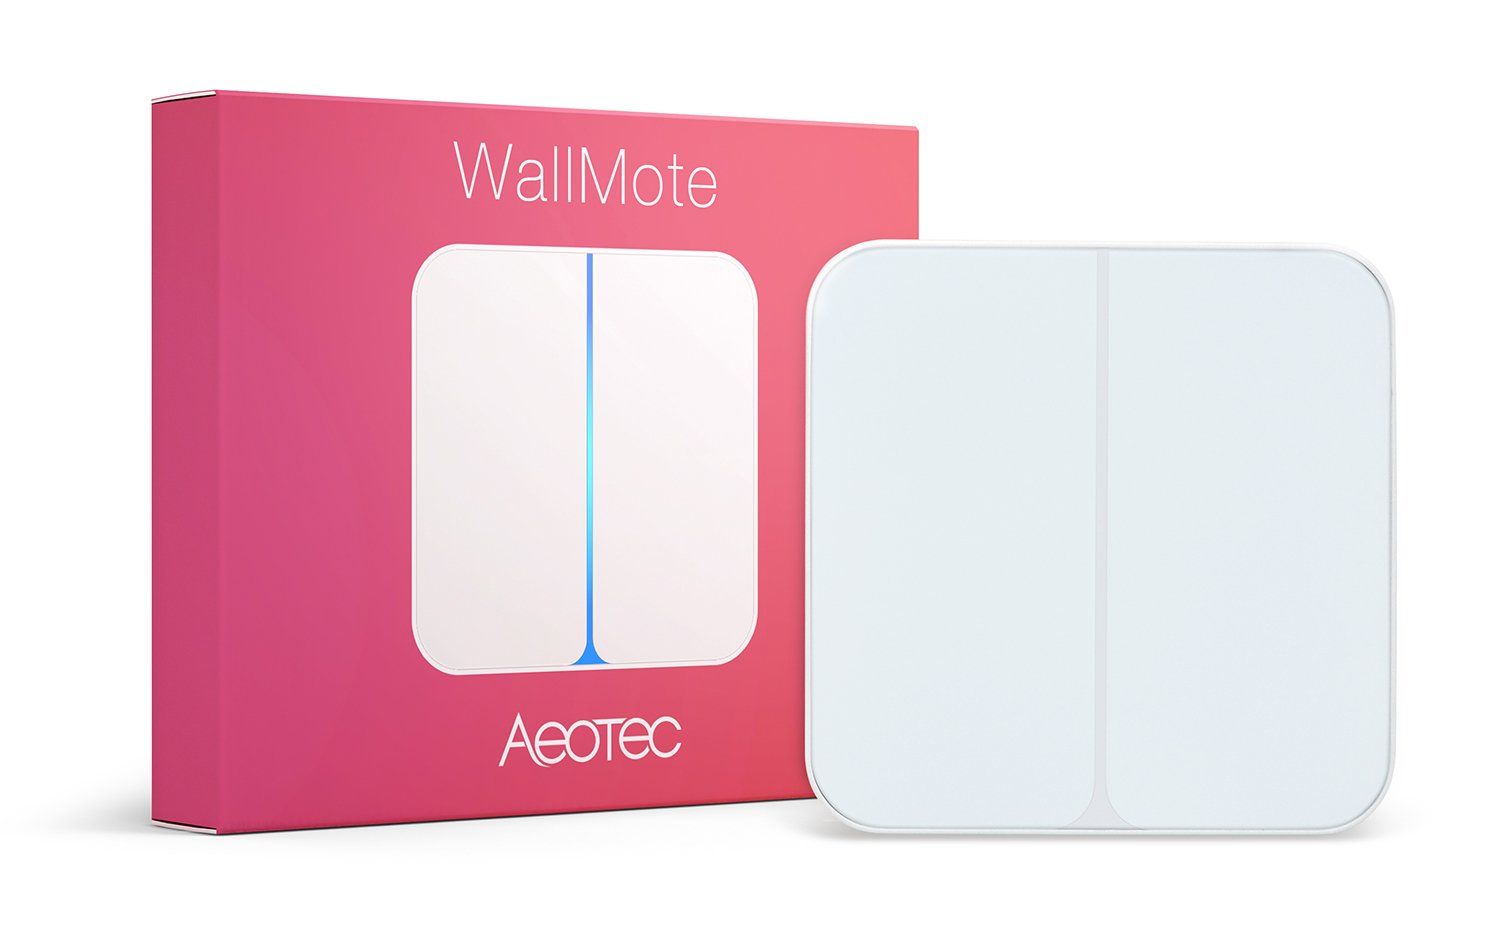 Aeotec WallMote, Z-Wave Plus wireless wall switch, 2 button, 8 scene remote control